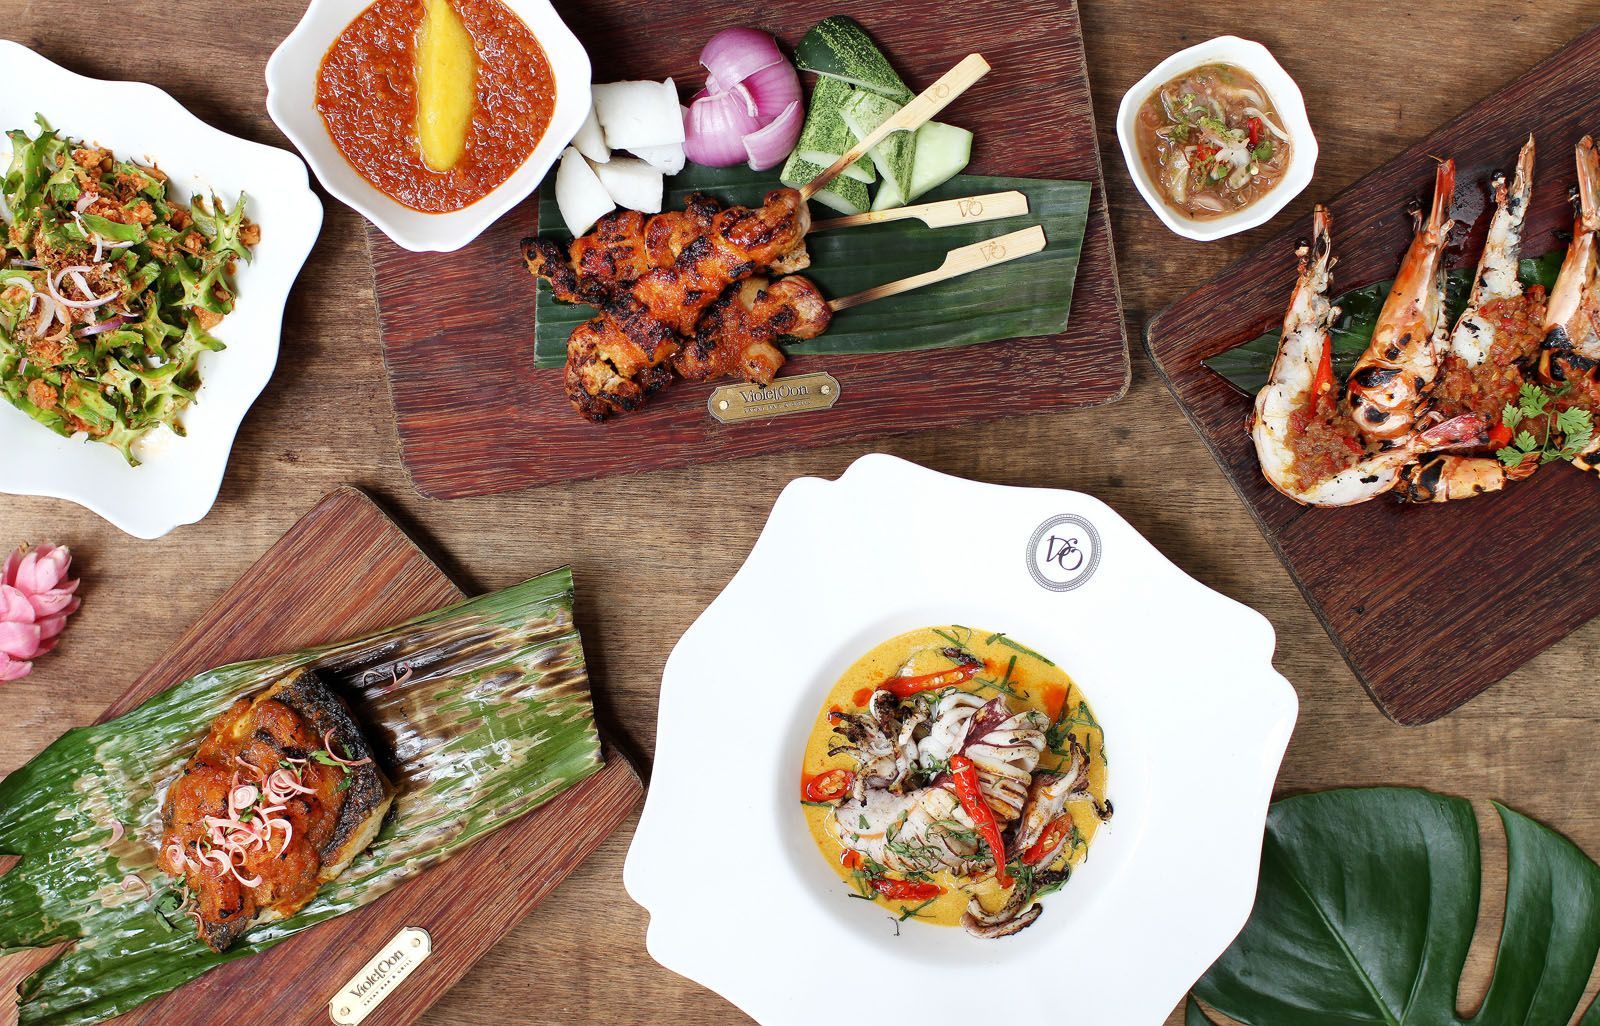 Where to Eat in Singapore This Week: Artemis Grill, Zafferano, Crossroads Café, Violet Oon Singapore Satay Bar & Grill, Burgers & Shakers